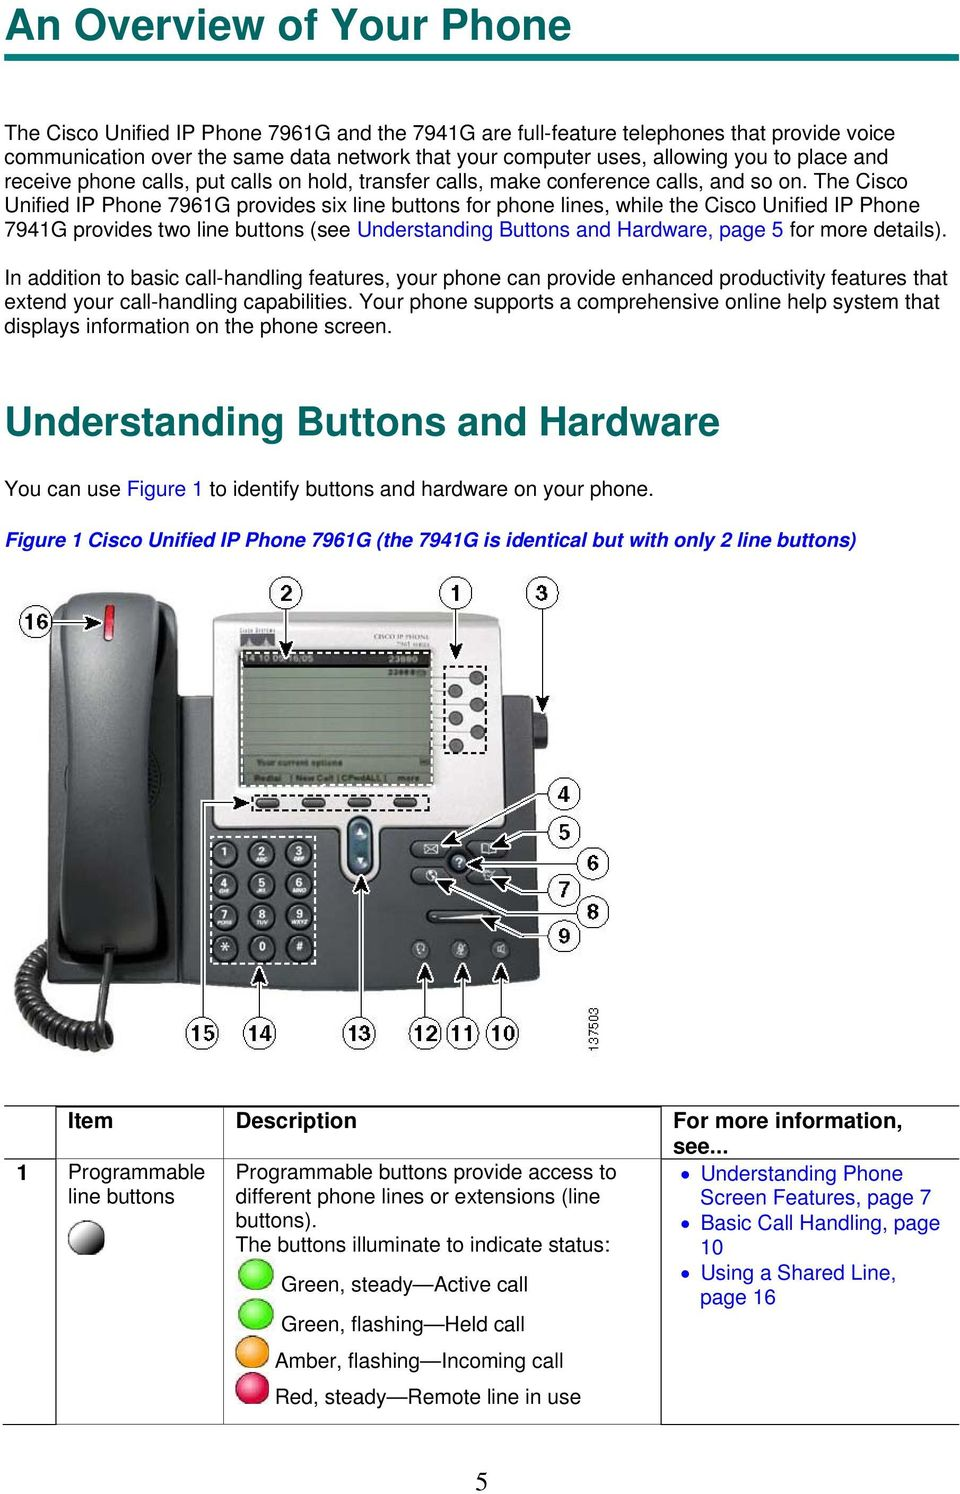 The Cisco Unified IP Phone 7961G provides six line buttons for phone lines, while the Cisco Unified IP Phone 7941G provides two line buttons (see Understanding Buttons and Hardware, page 5 for more